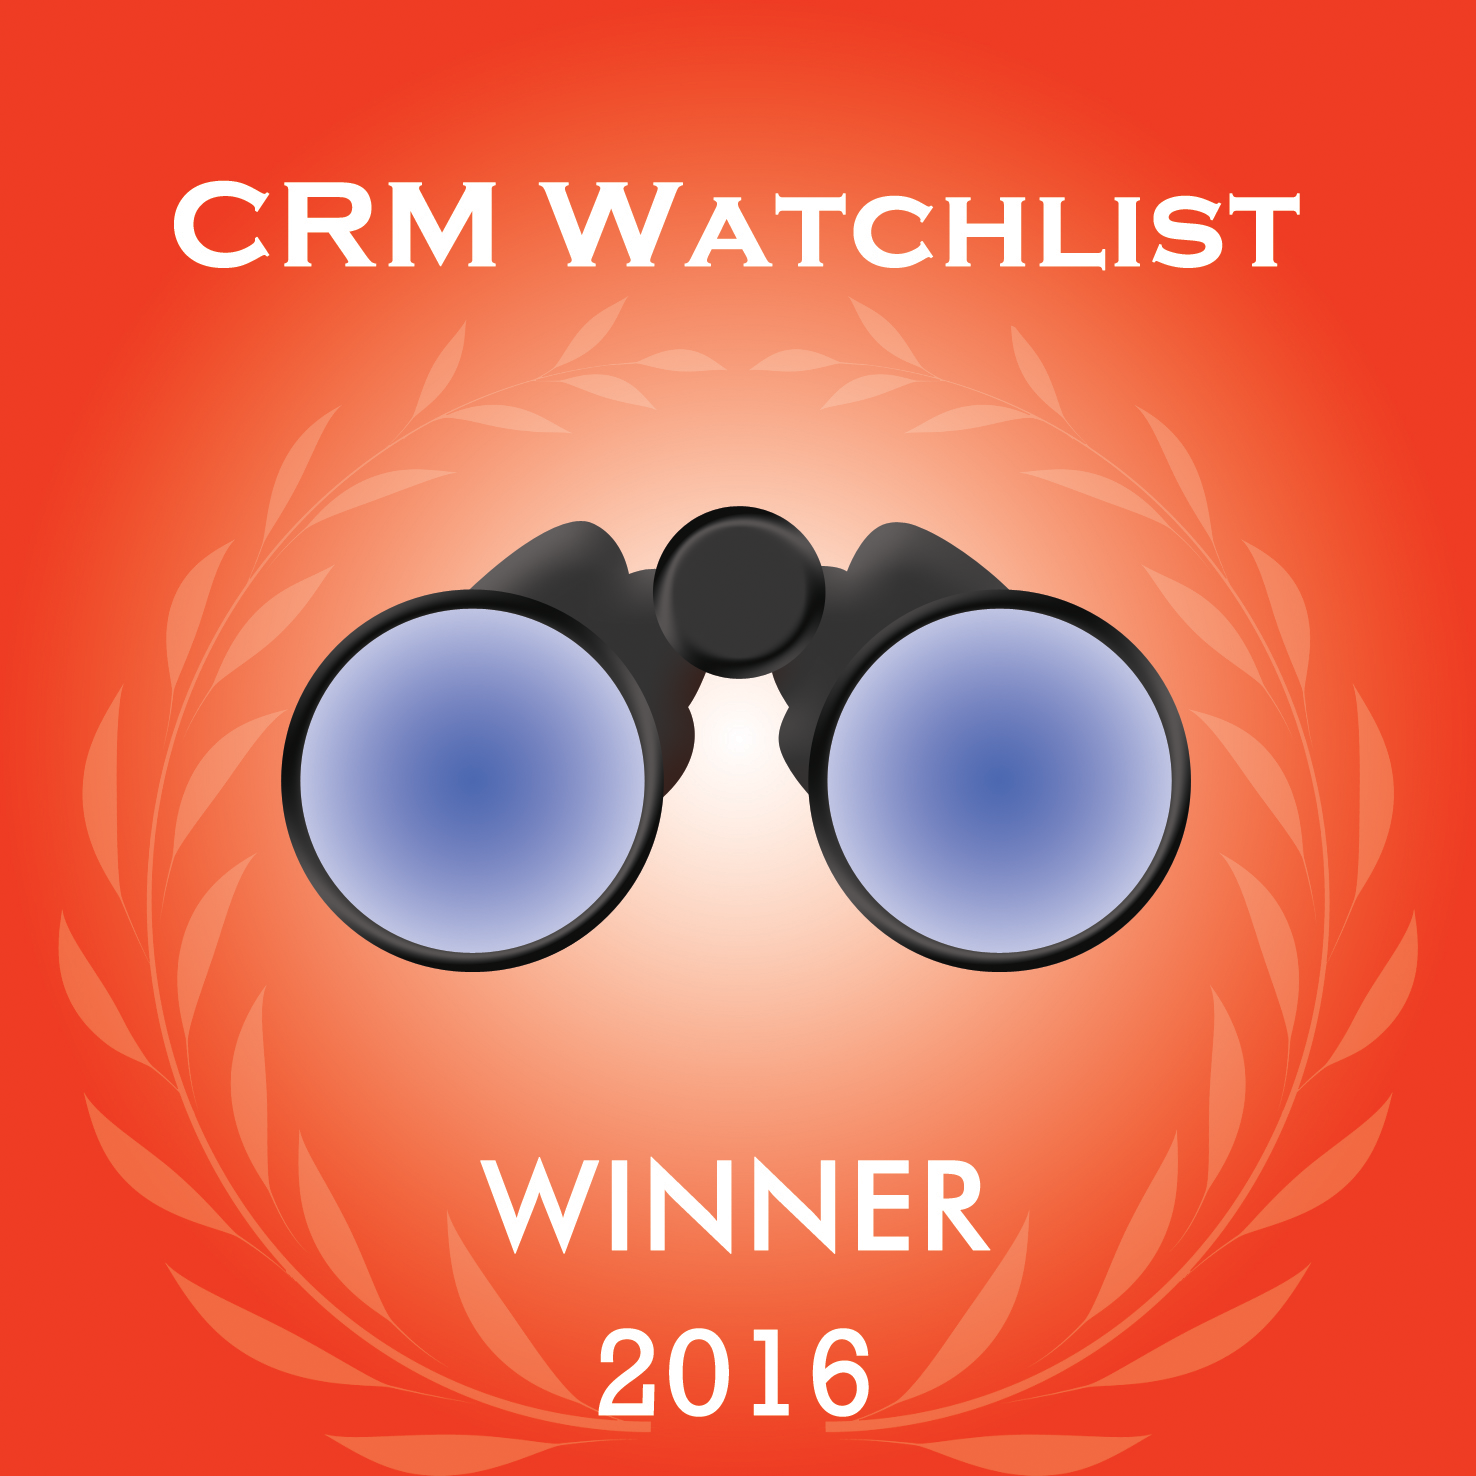 Winner – 2016 CRM Watchlist